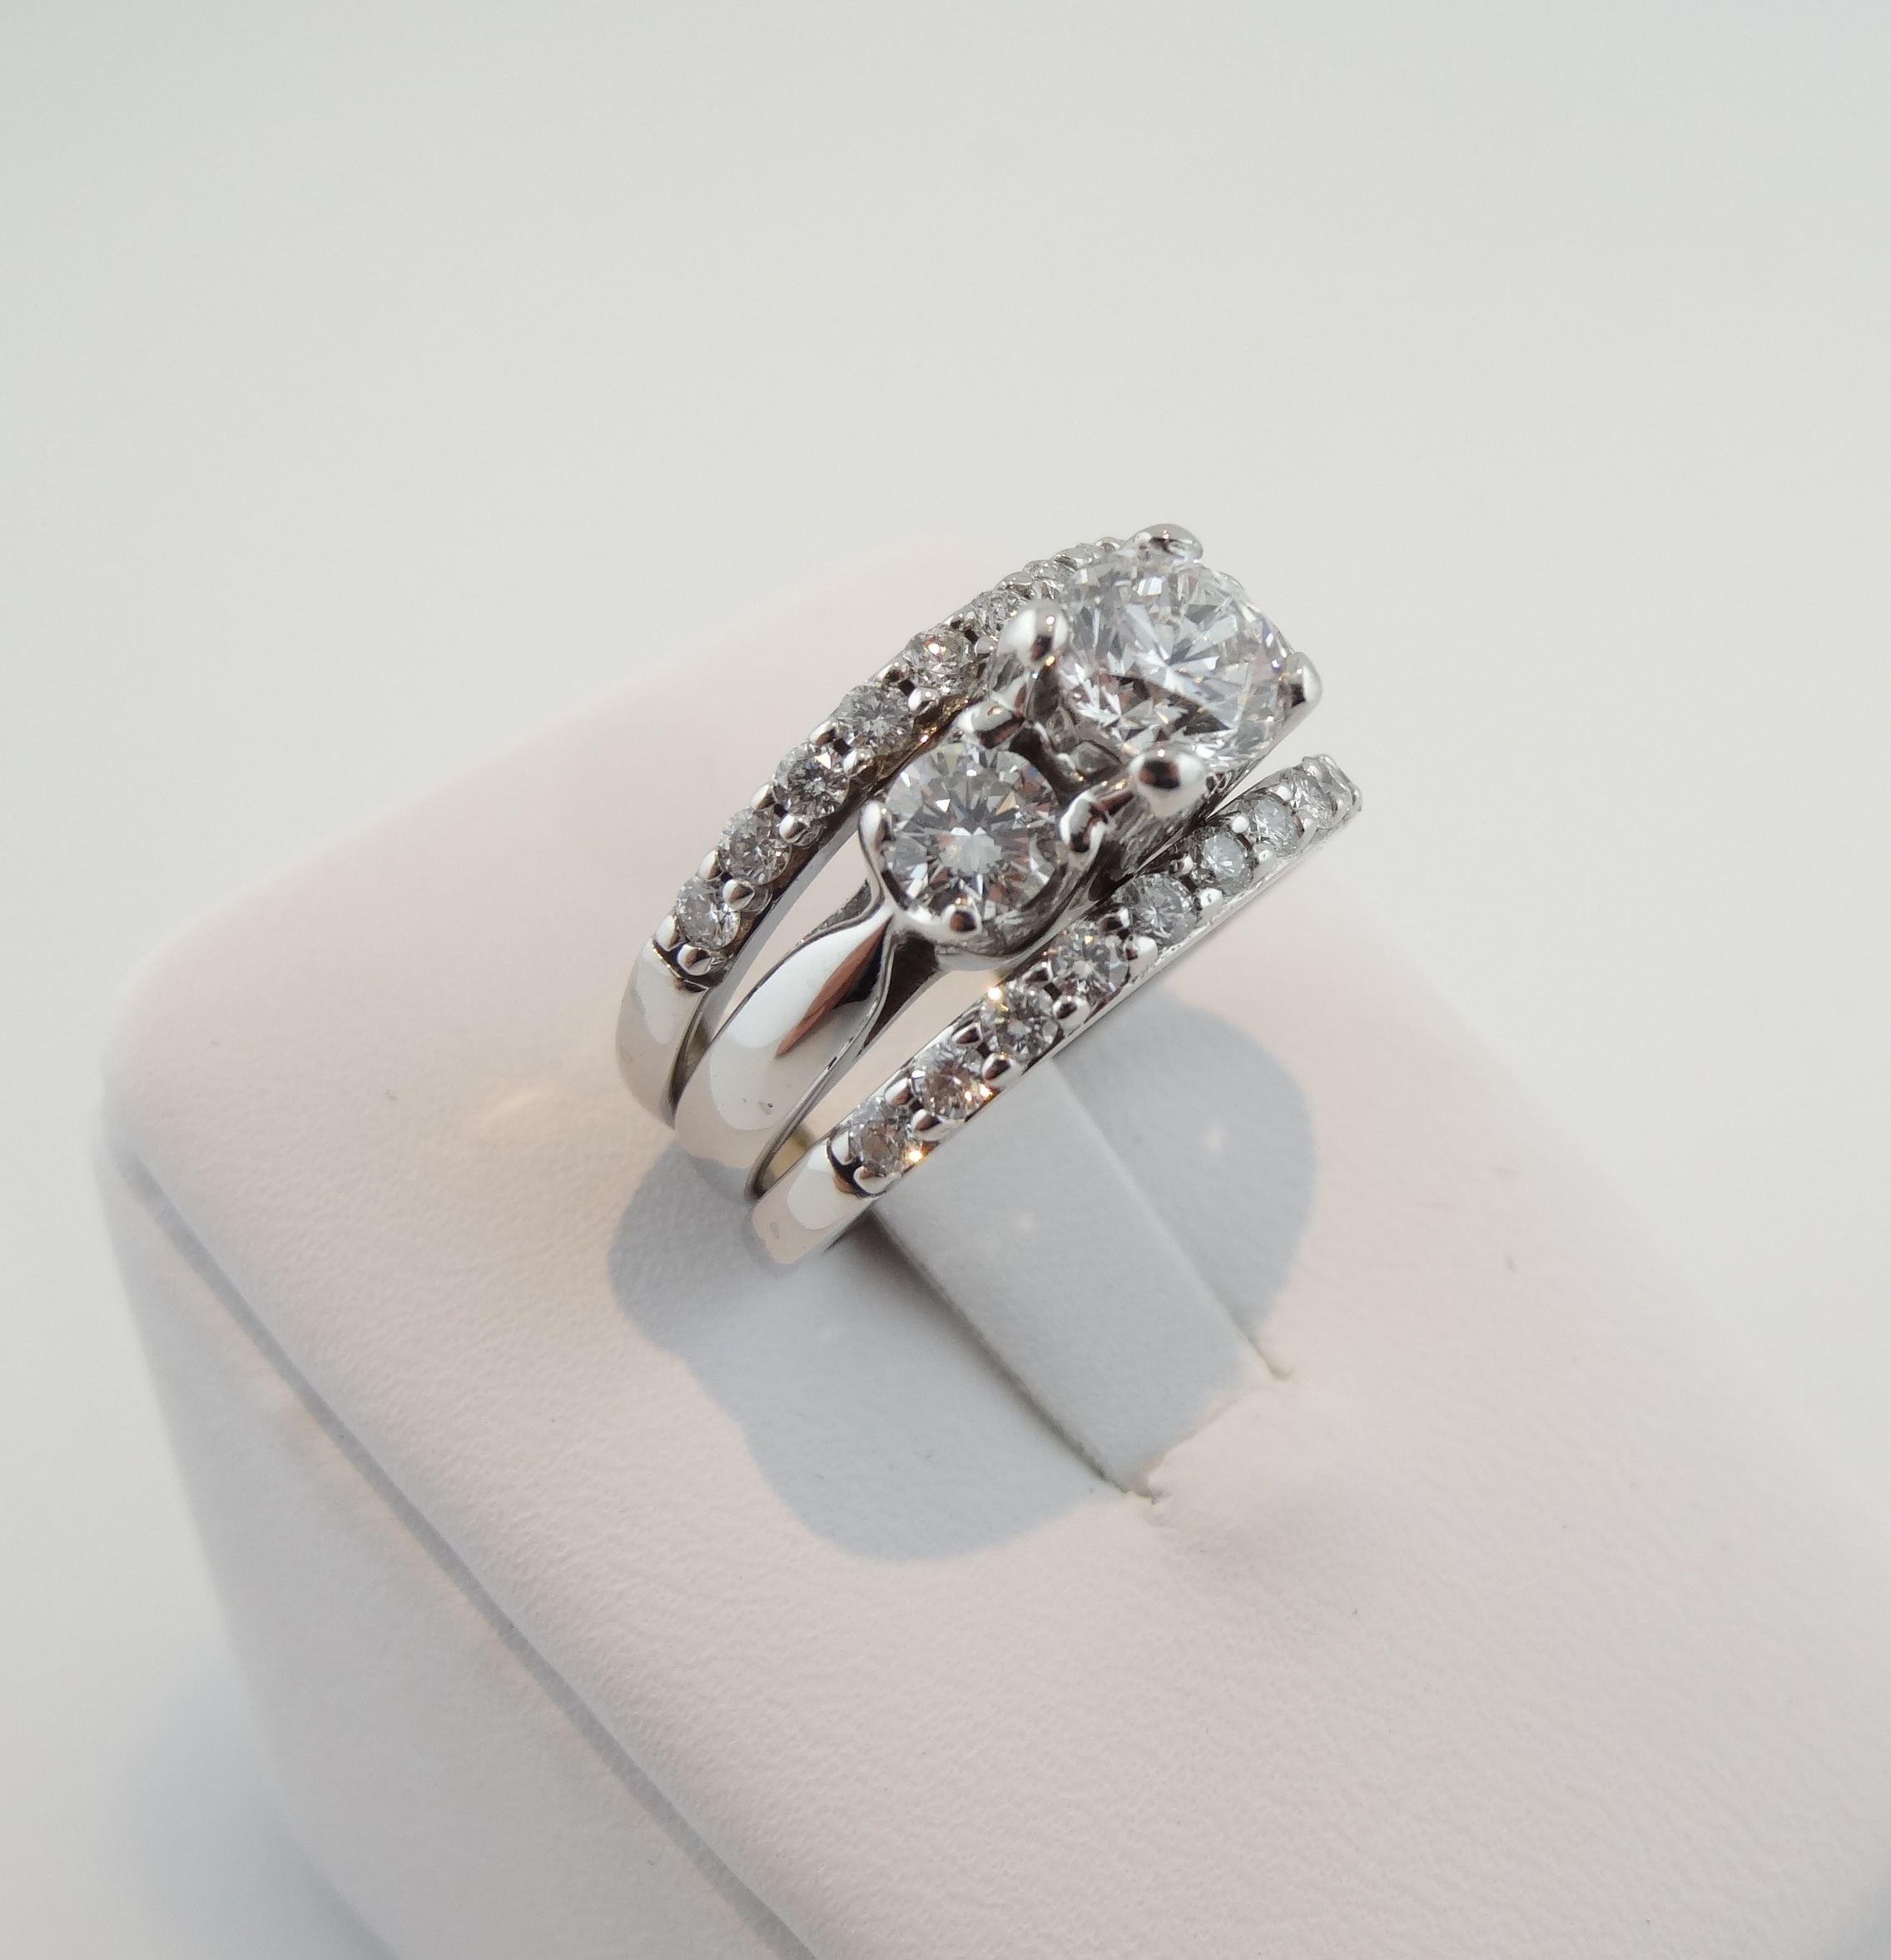 stone silver lovely cut kohl of cushion set ring sterling in s rings alternative diamond engagement